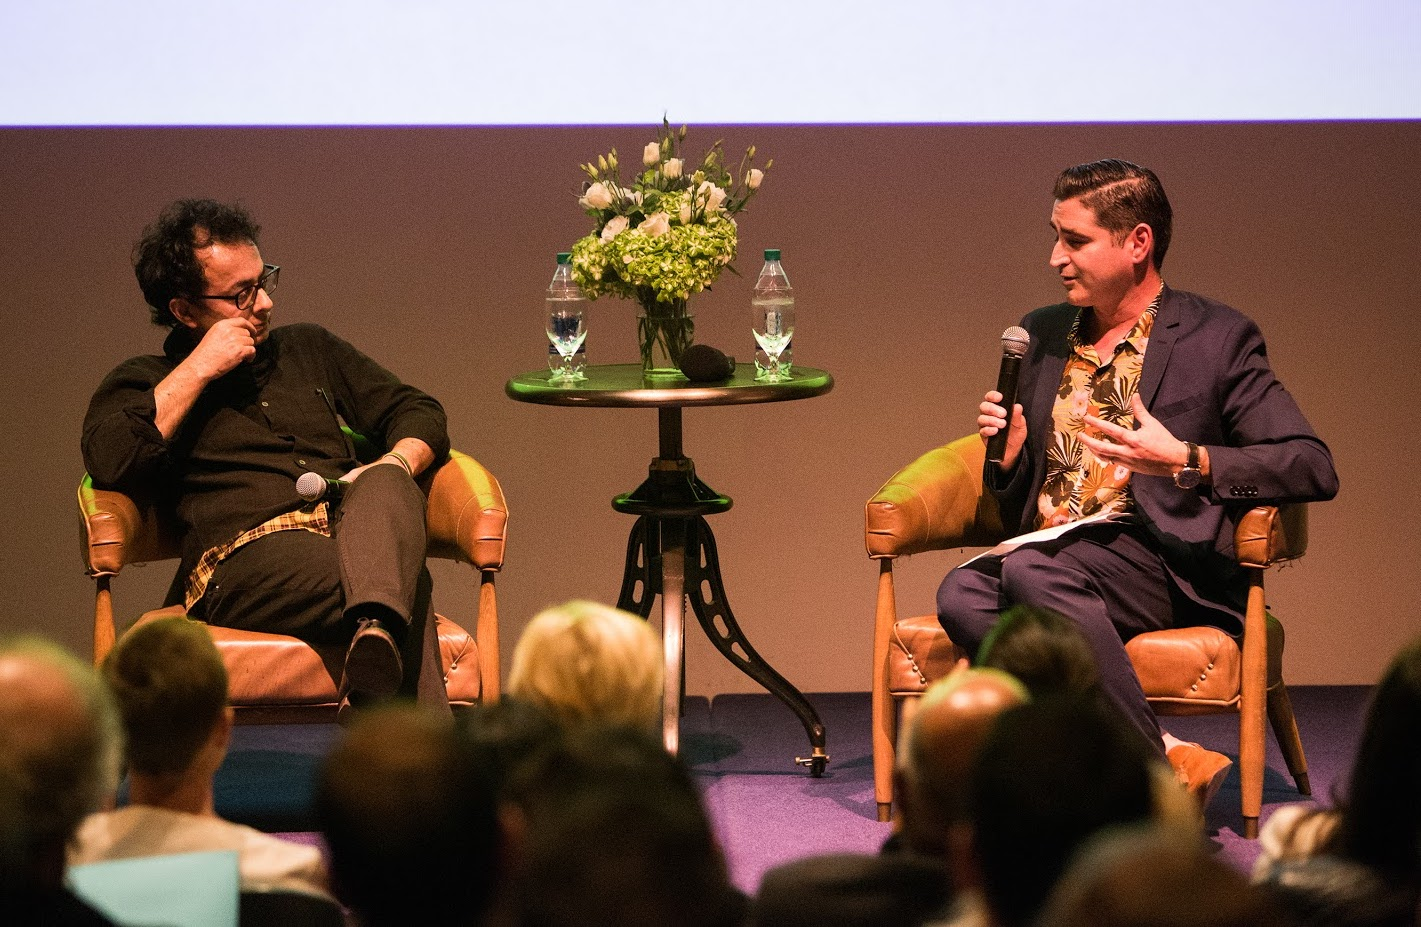 Artist Lecture with Farhad Moshiri (left) and José Carlos Diaz (right). Photo by Sean Carroll.